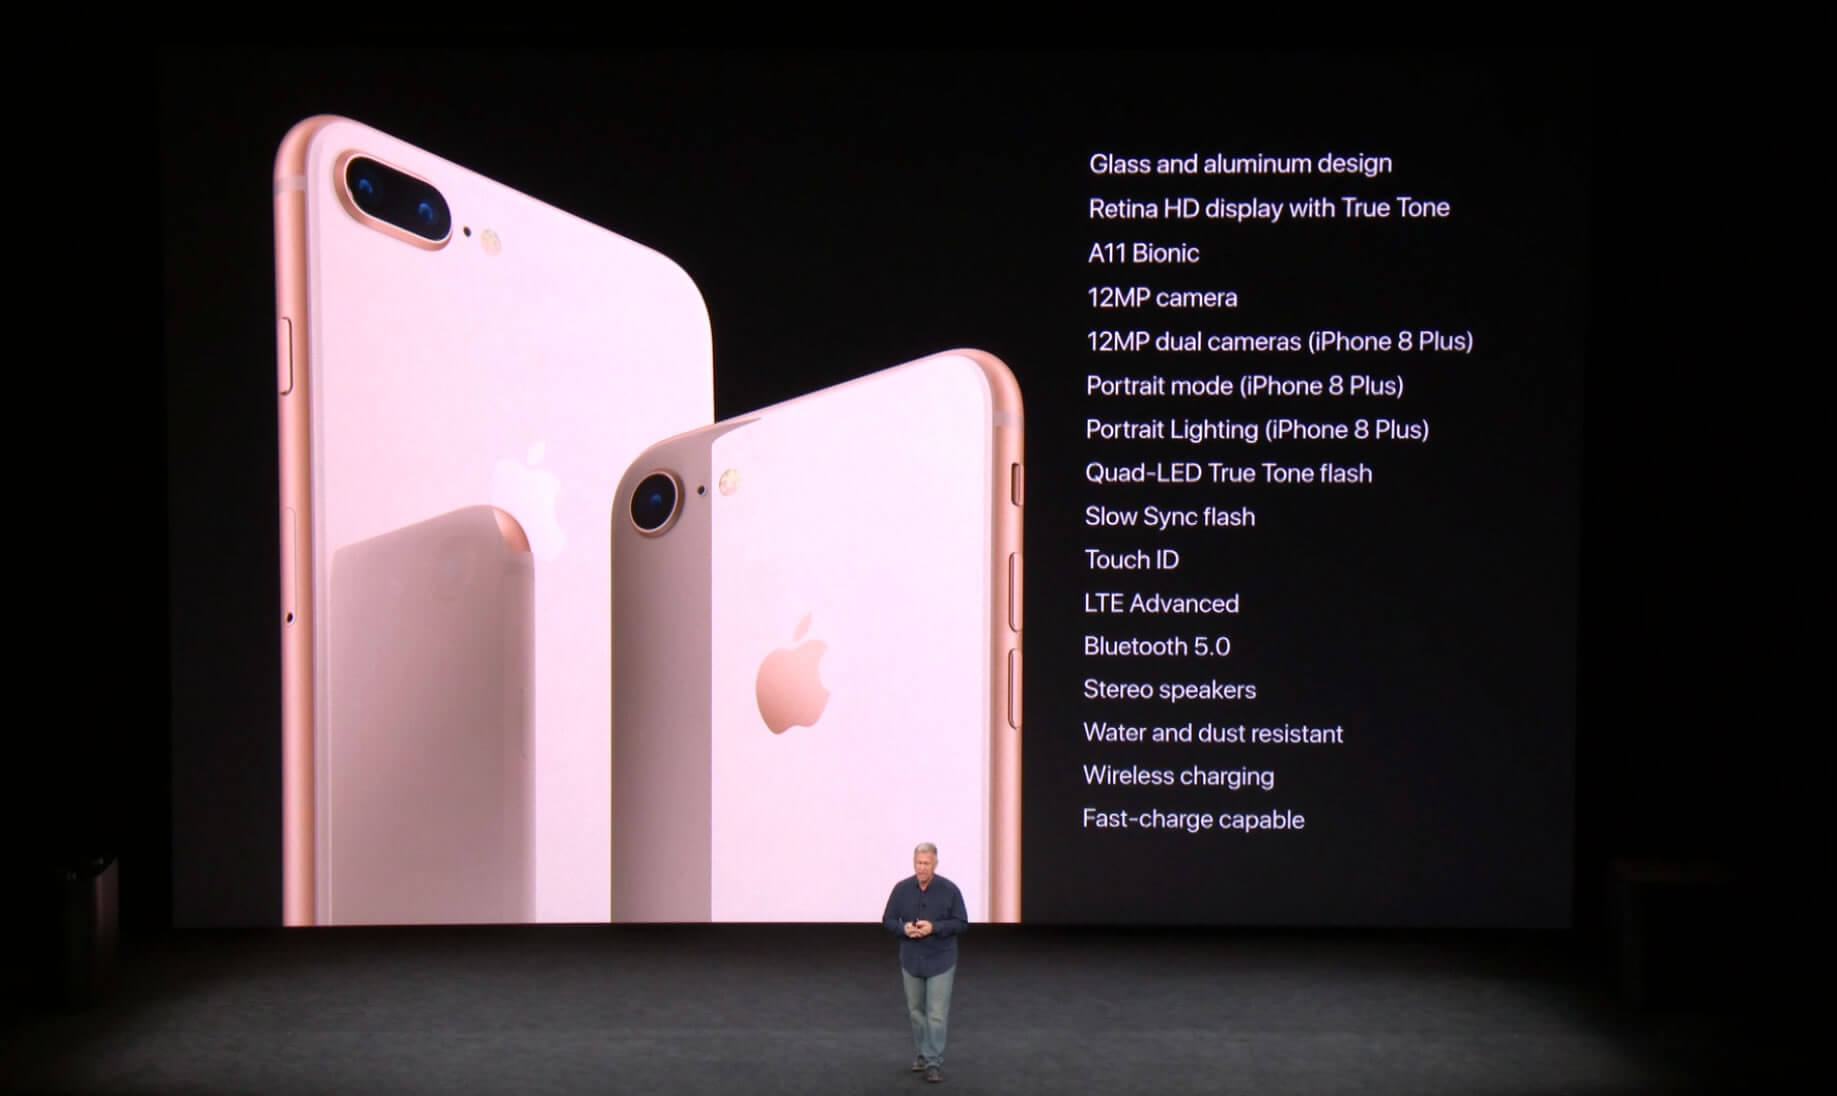 The Full List Of New IPhone 8 Features Can Be Seen In Photo Above Though Course Ask Apple And They Will Tell You Body Is All